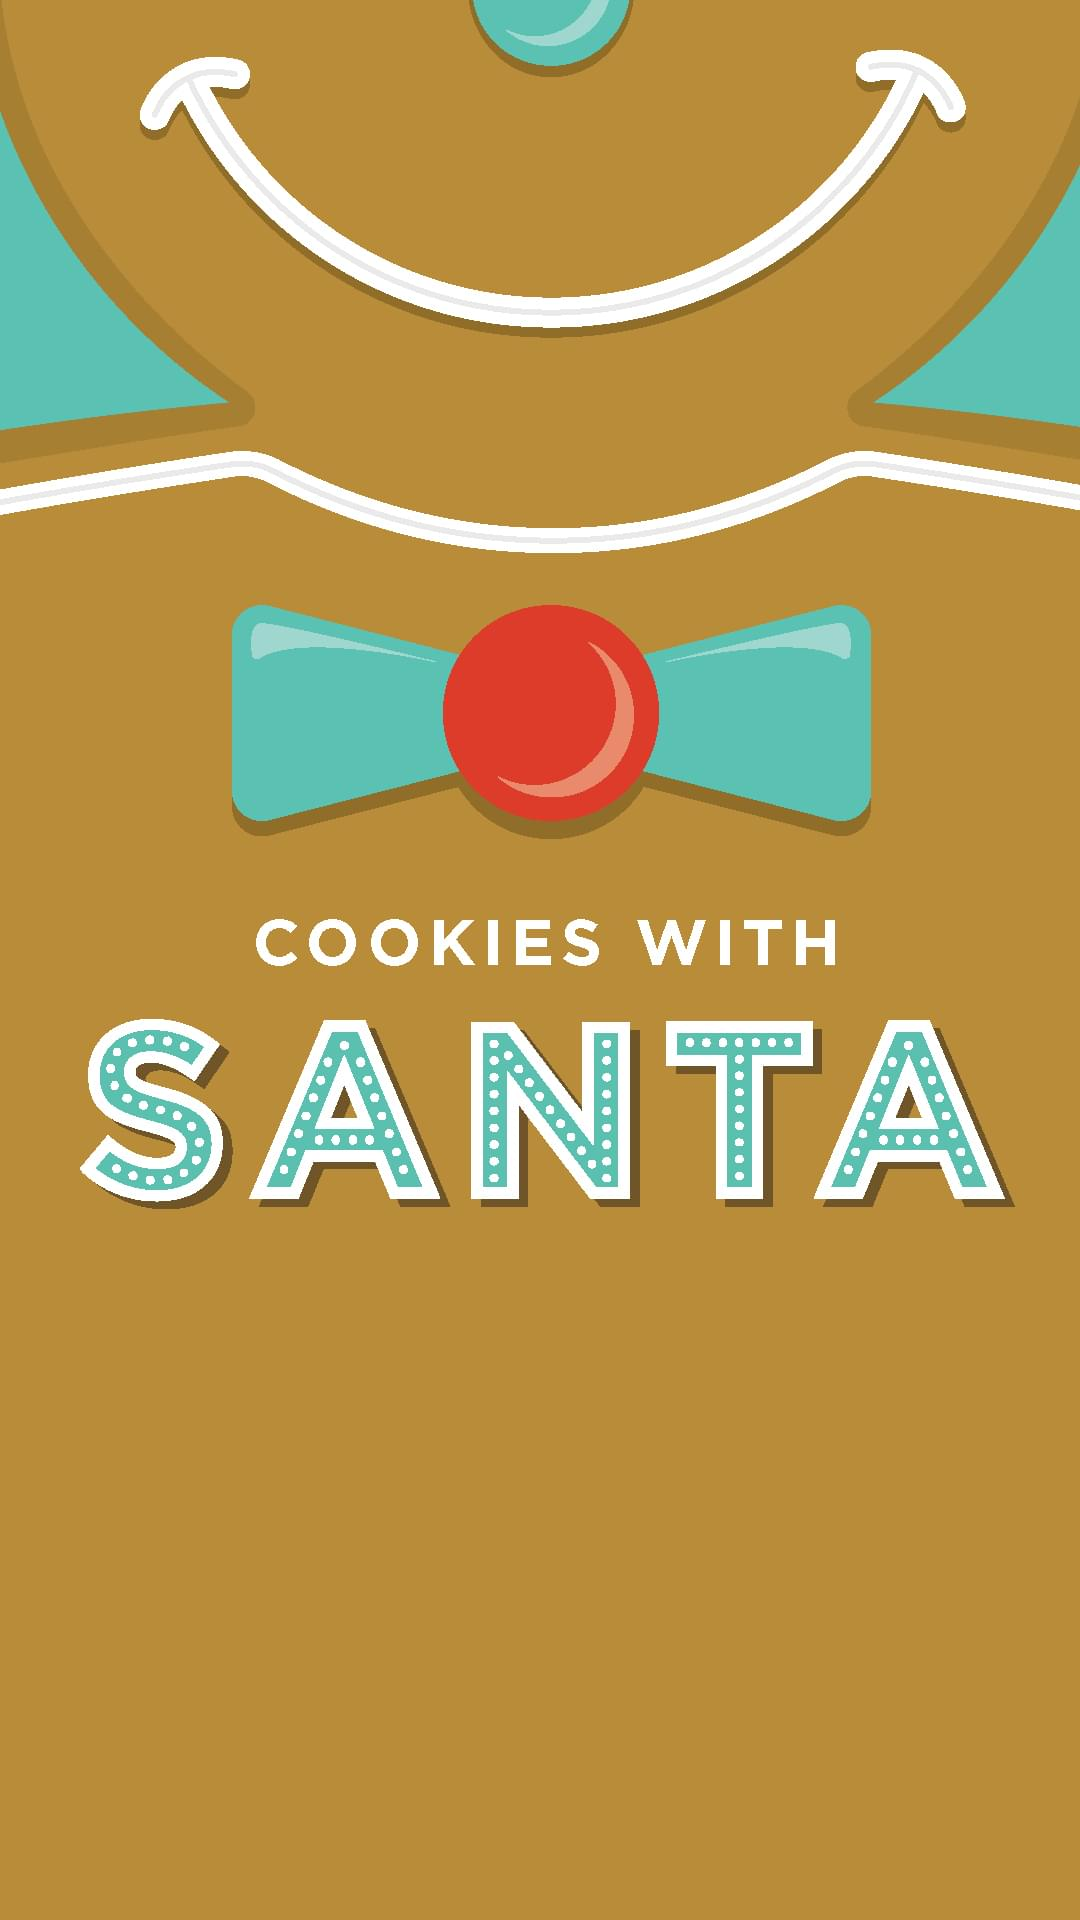 Cookies With Santa Presented By Pottery Barn Kids December